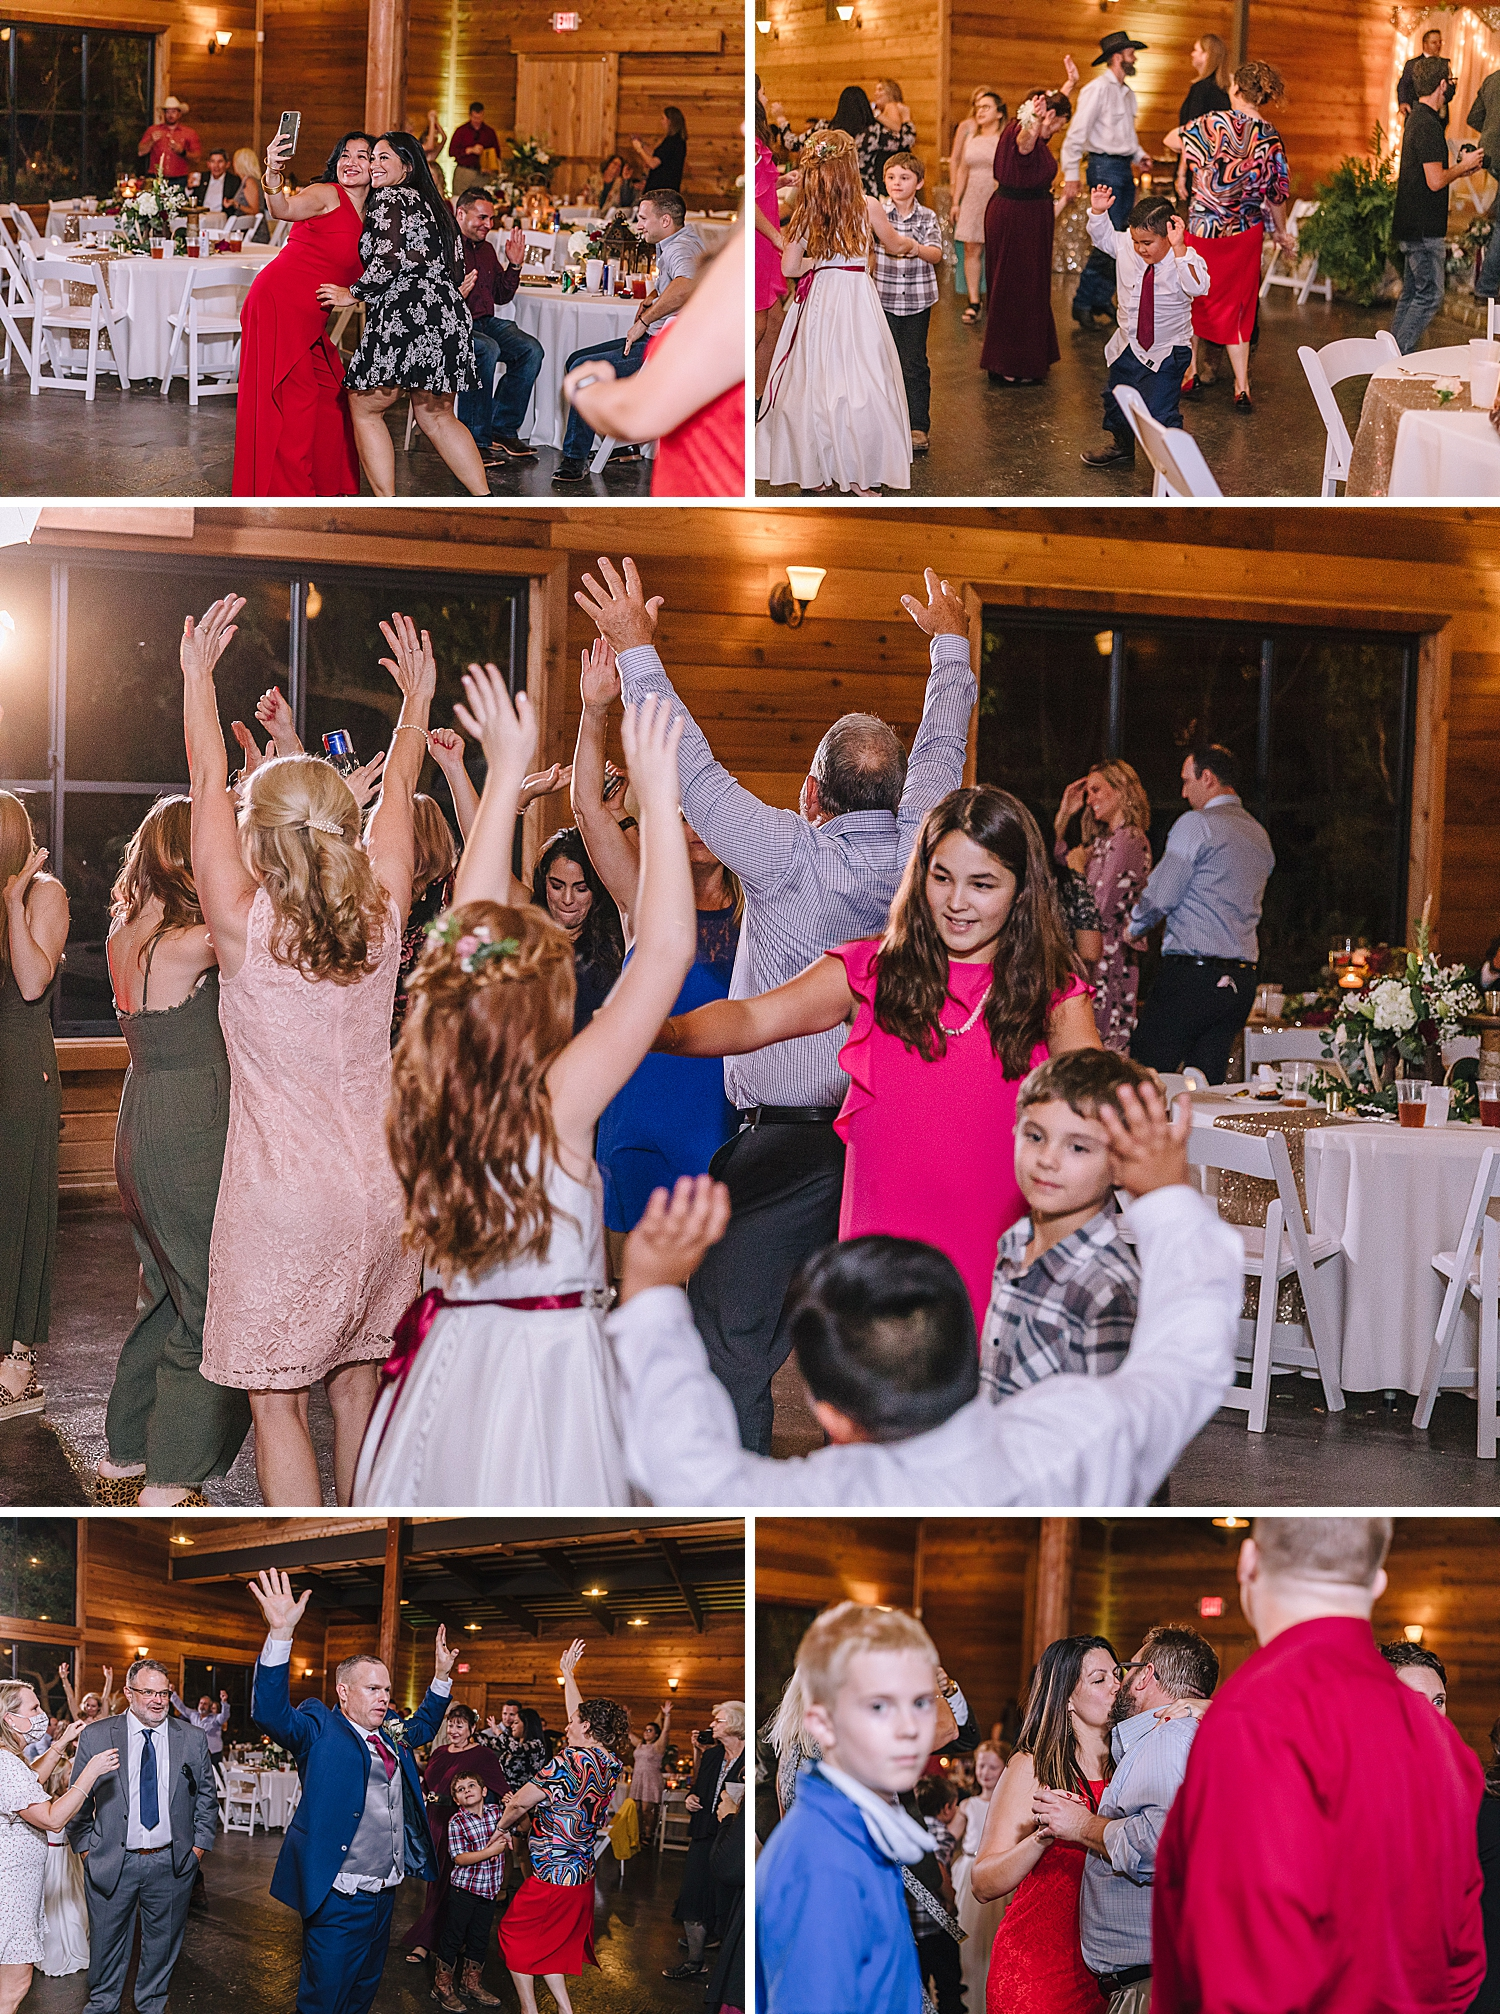 Geronimo-Oaks-Wedding-Venue-Seguin-Texas-Elegant-Navy-Burgundy-Wedding-Carly-Barton-Photography_0095.jpg